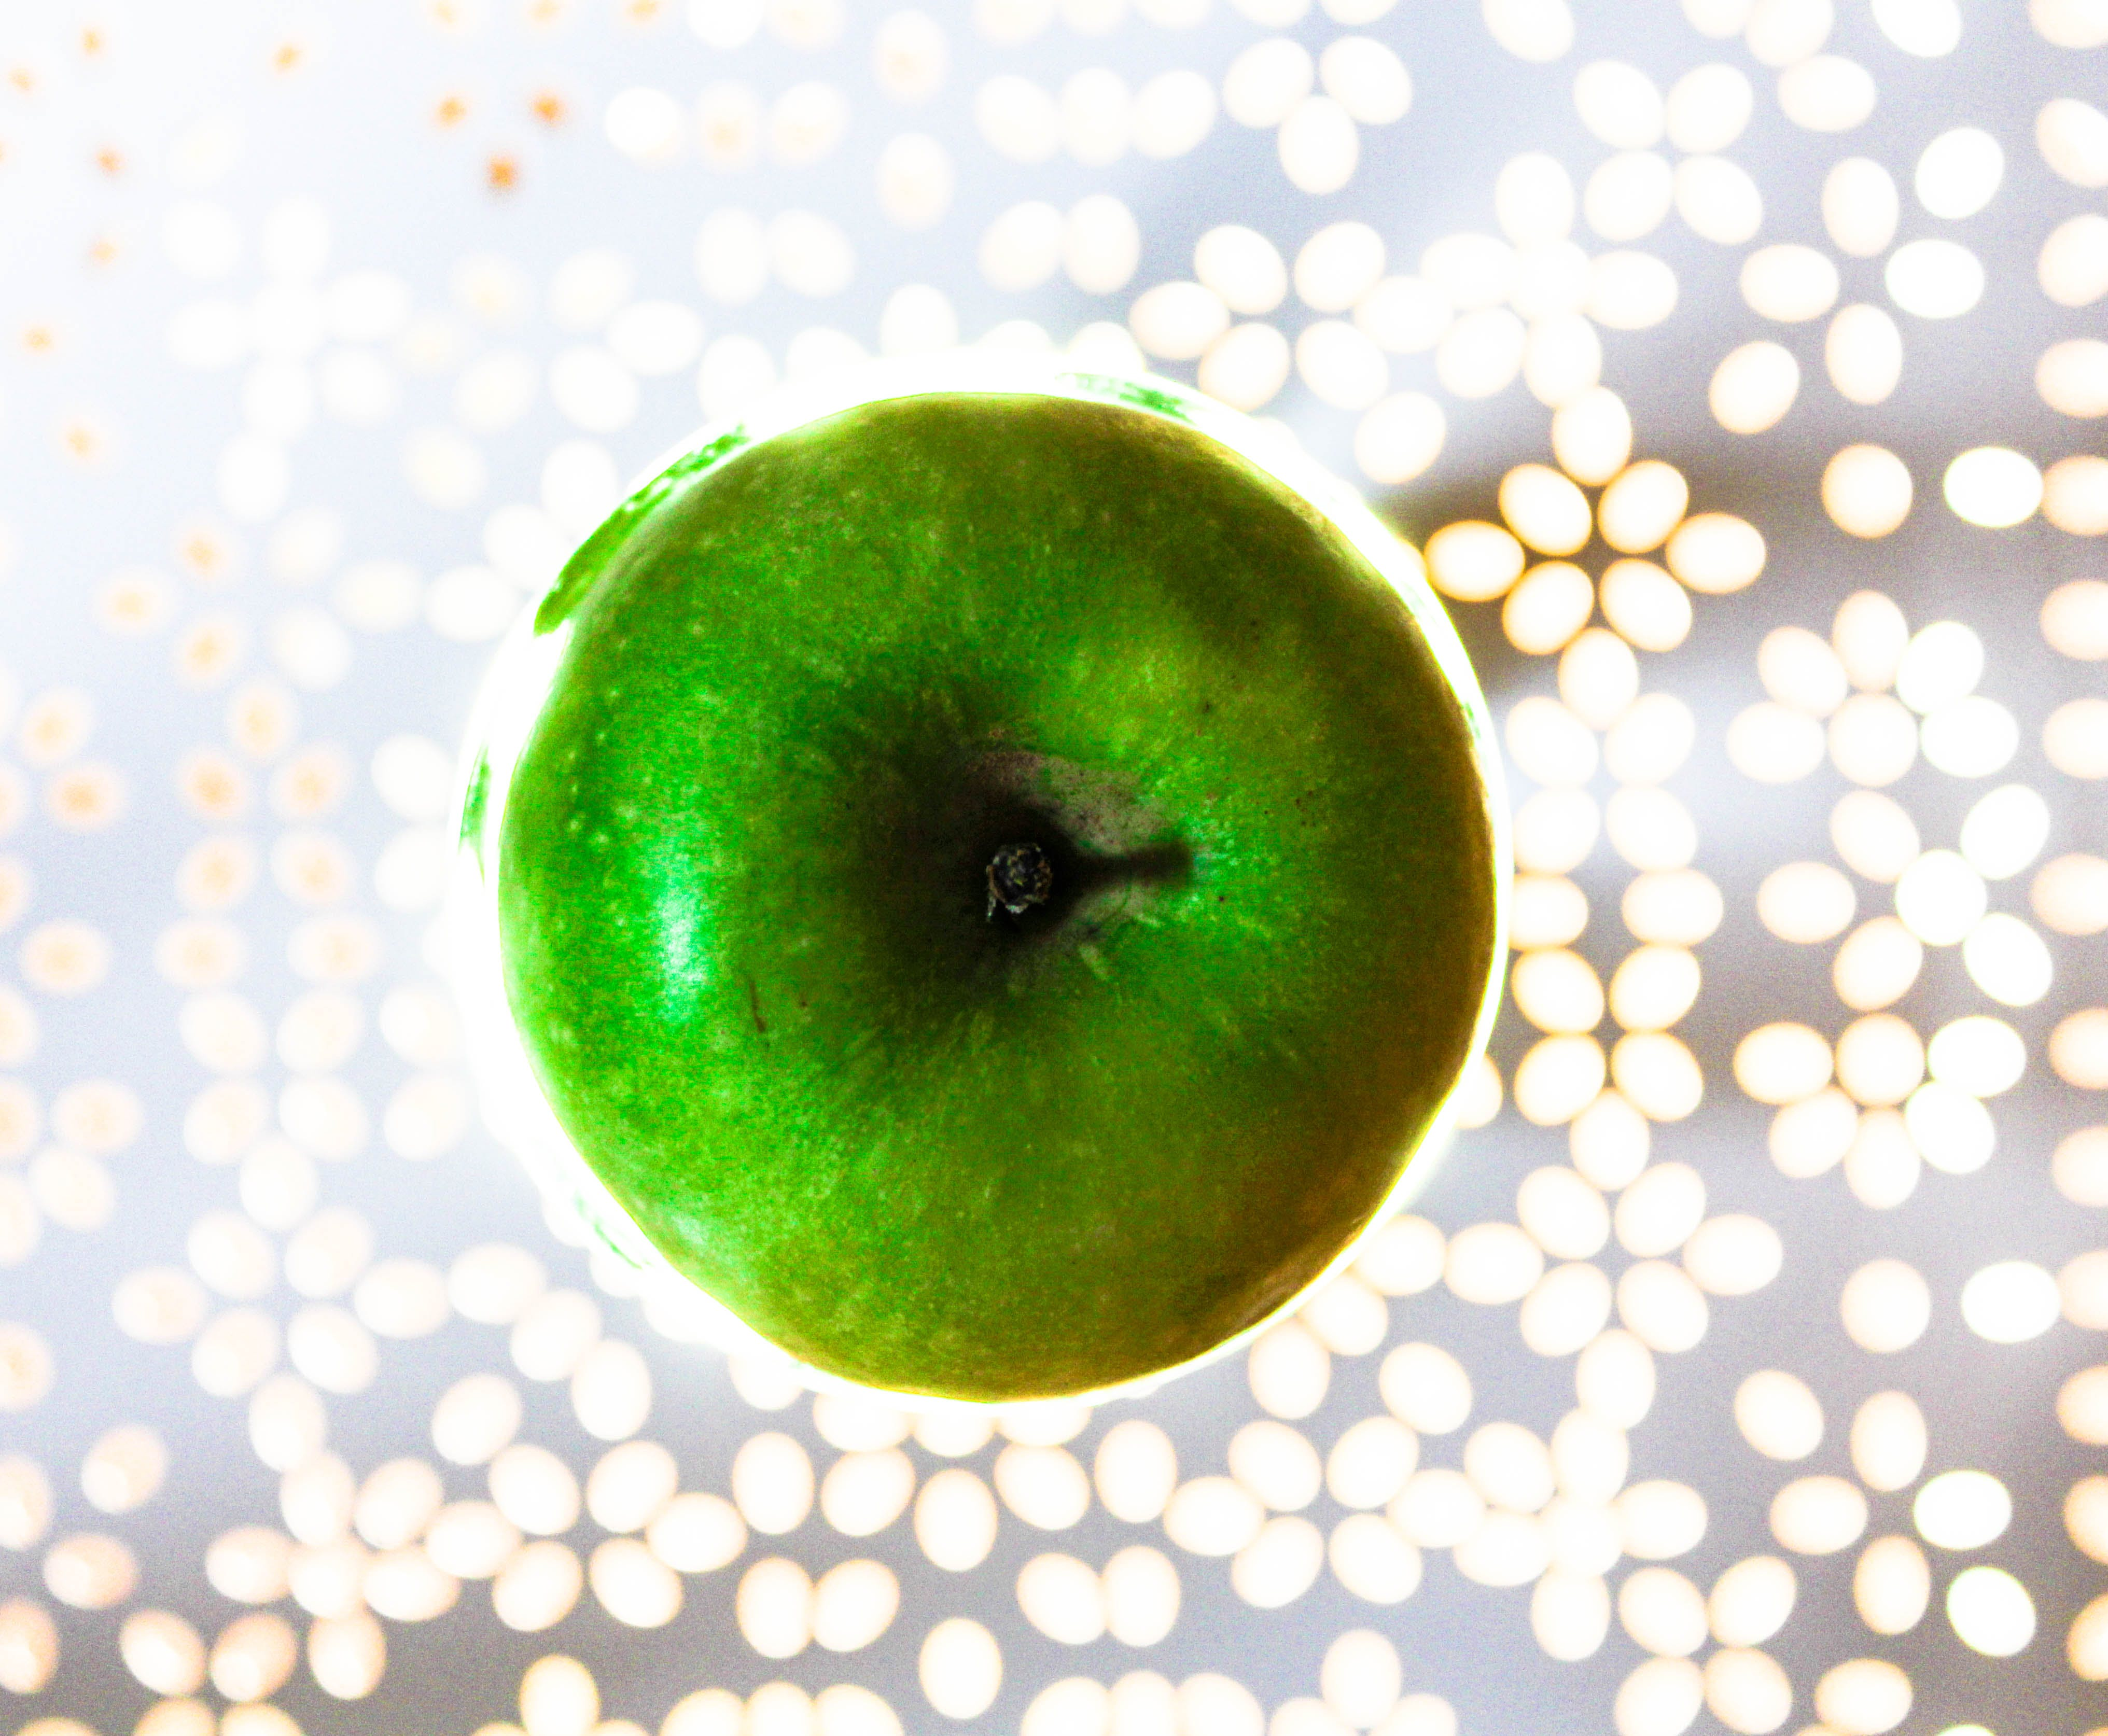 Free stock photo of abstract background, cool, eating healthy, fresh